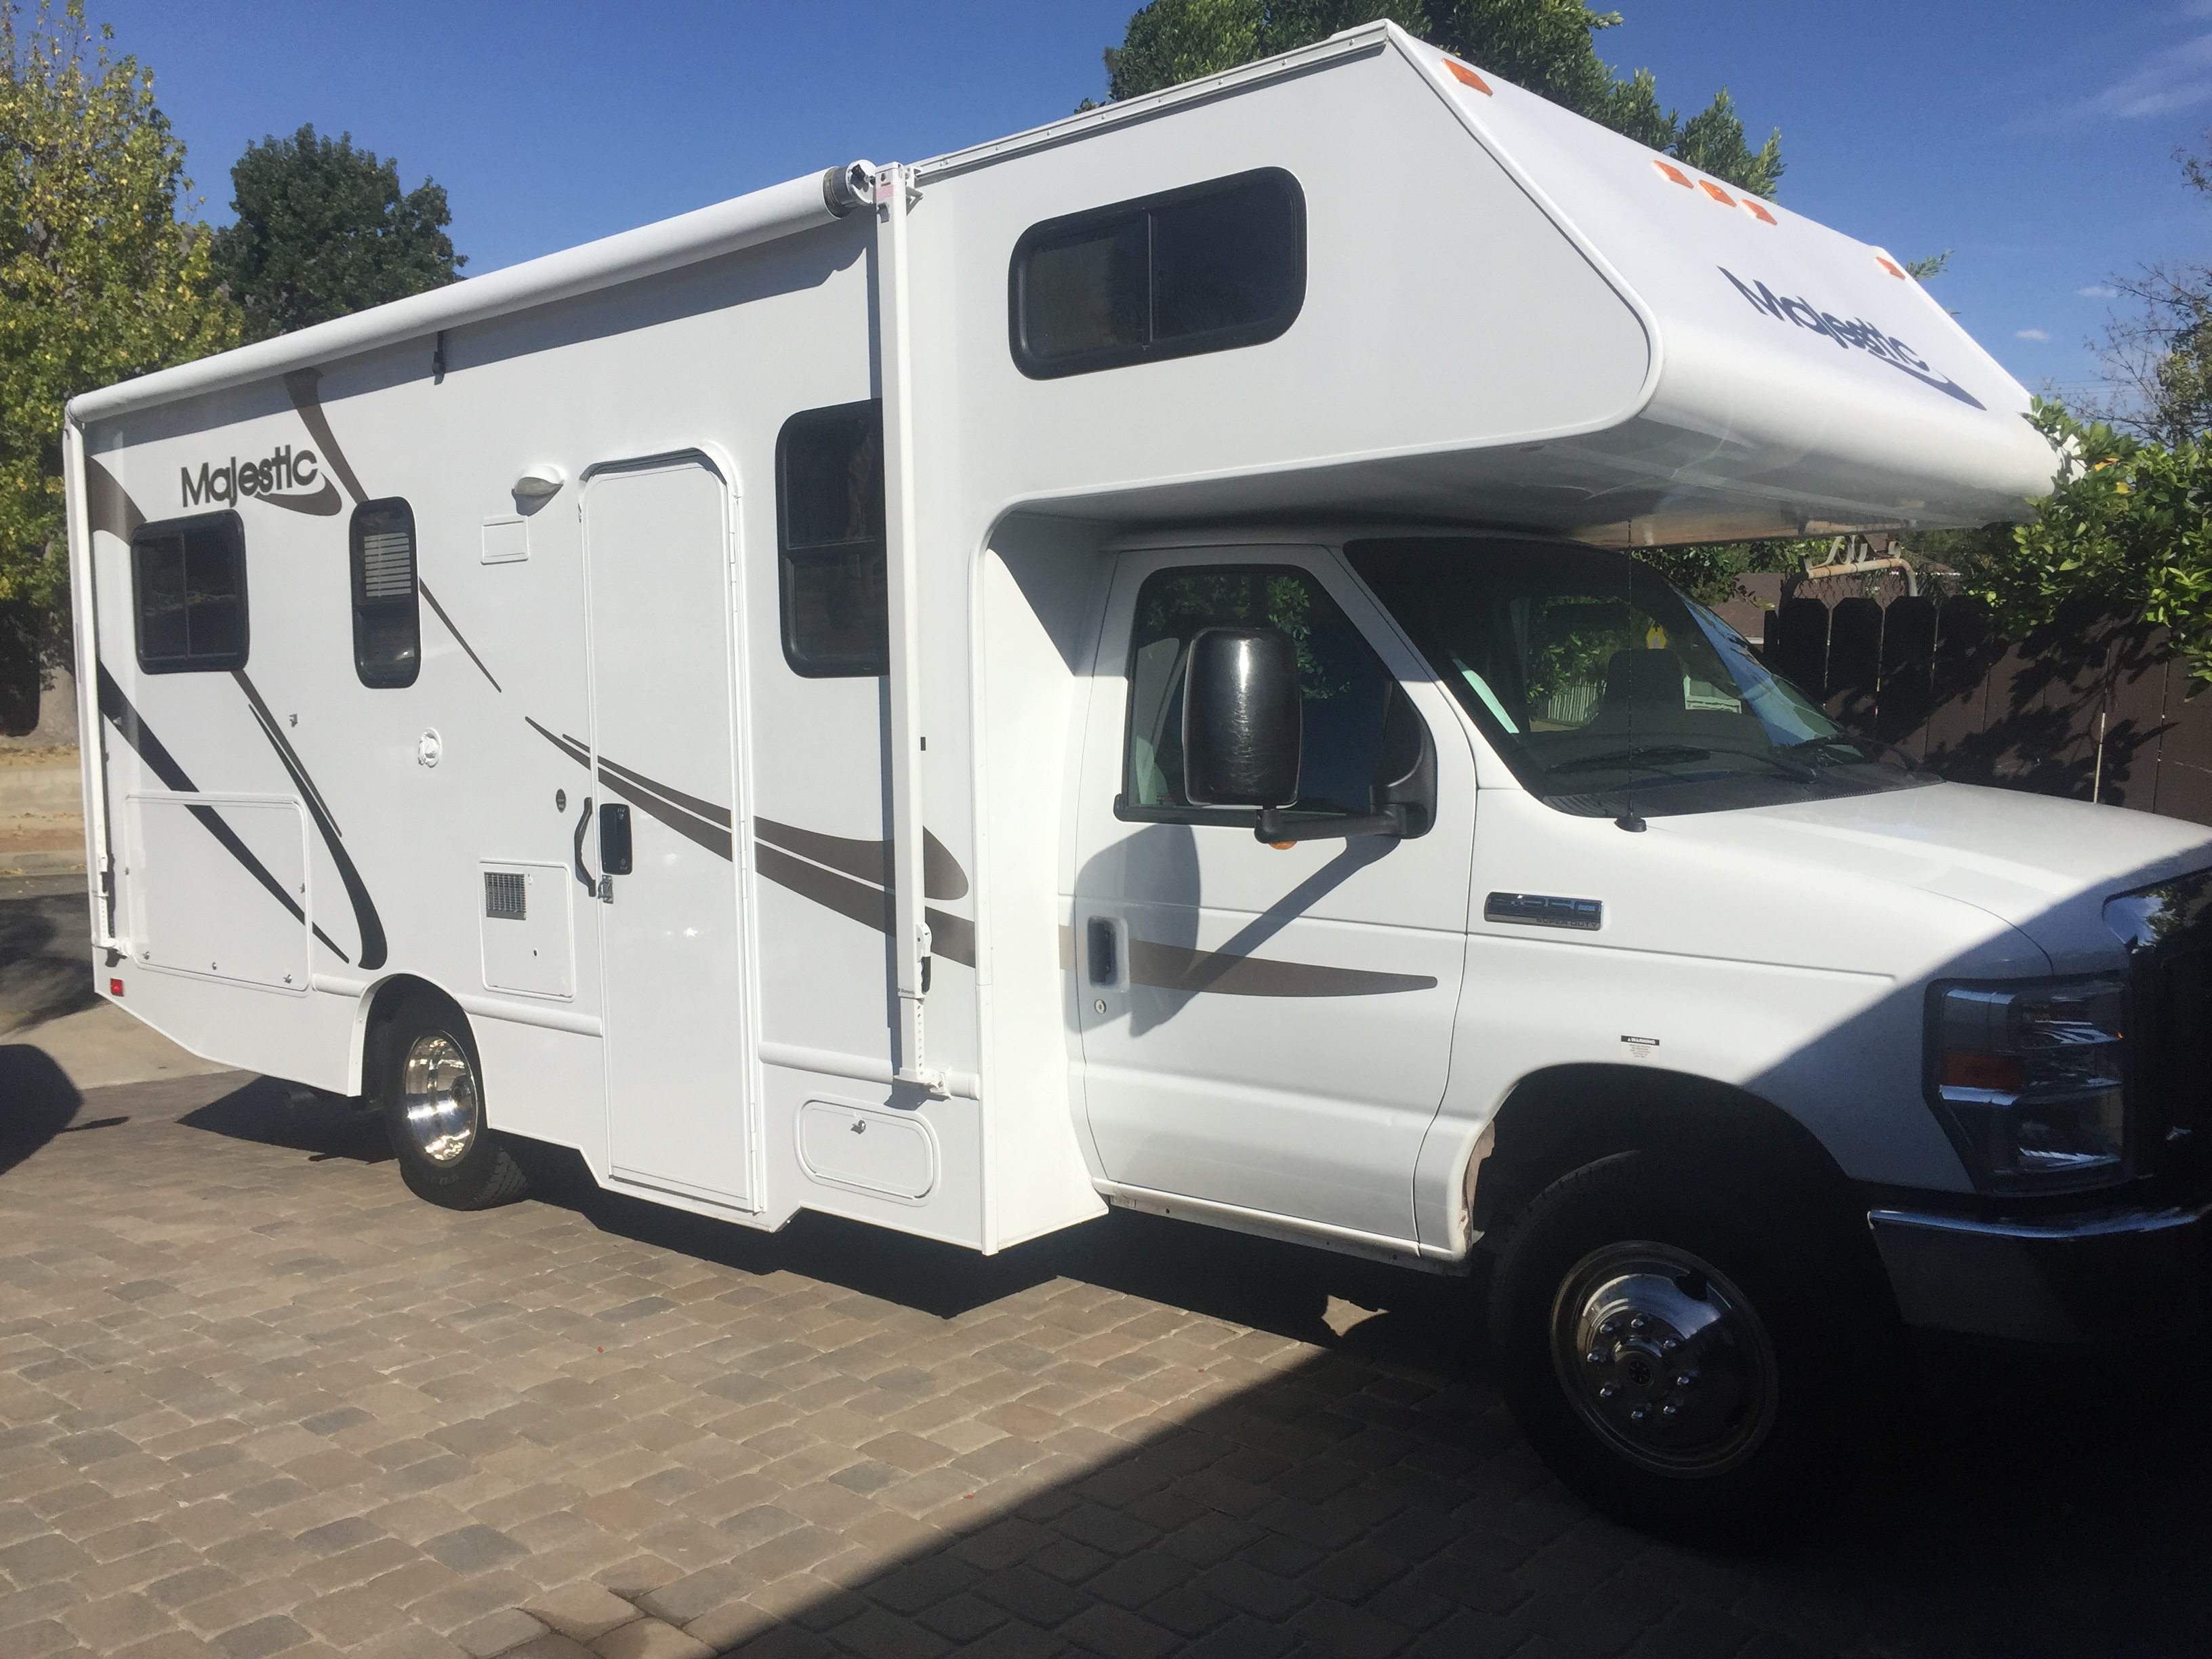 Ford Majestic 23a 2012